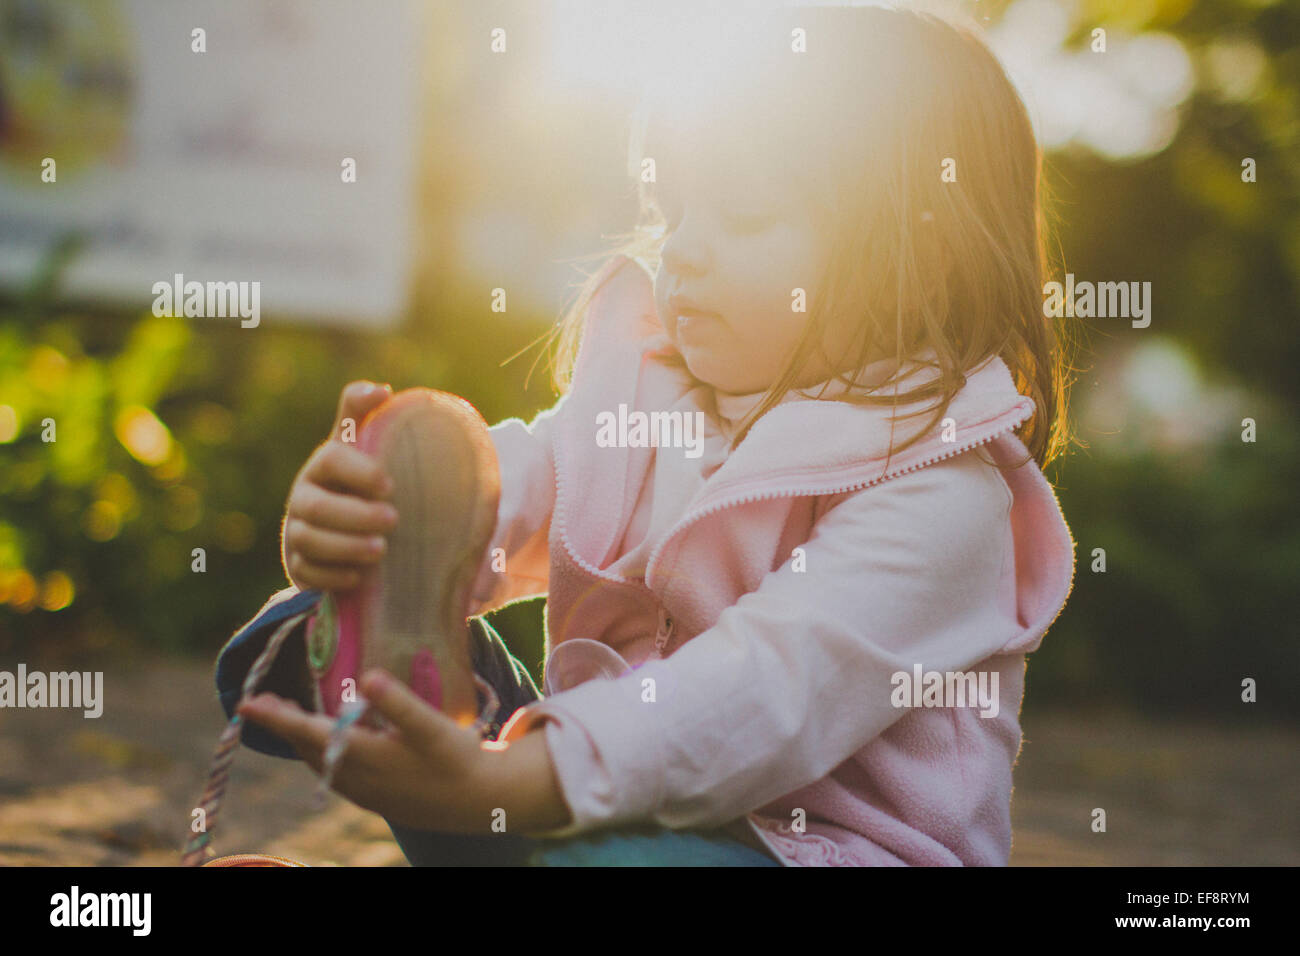 Portrait of girl (2-3) taking off shoe - Stock Image